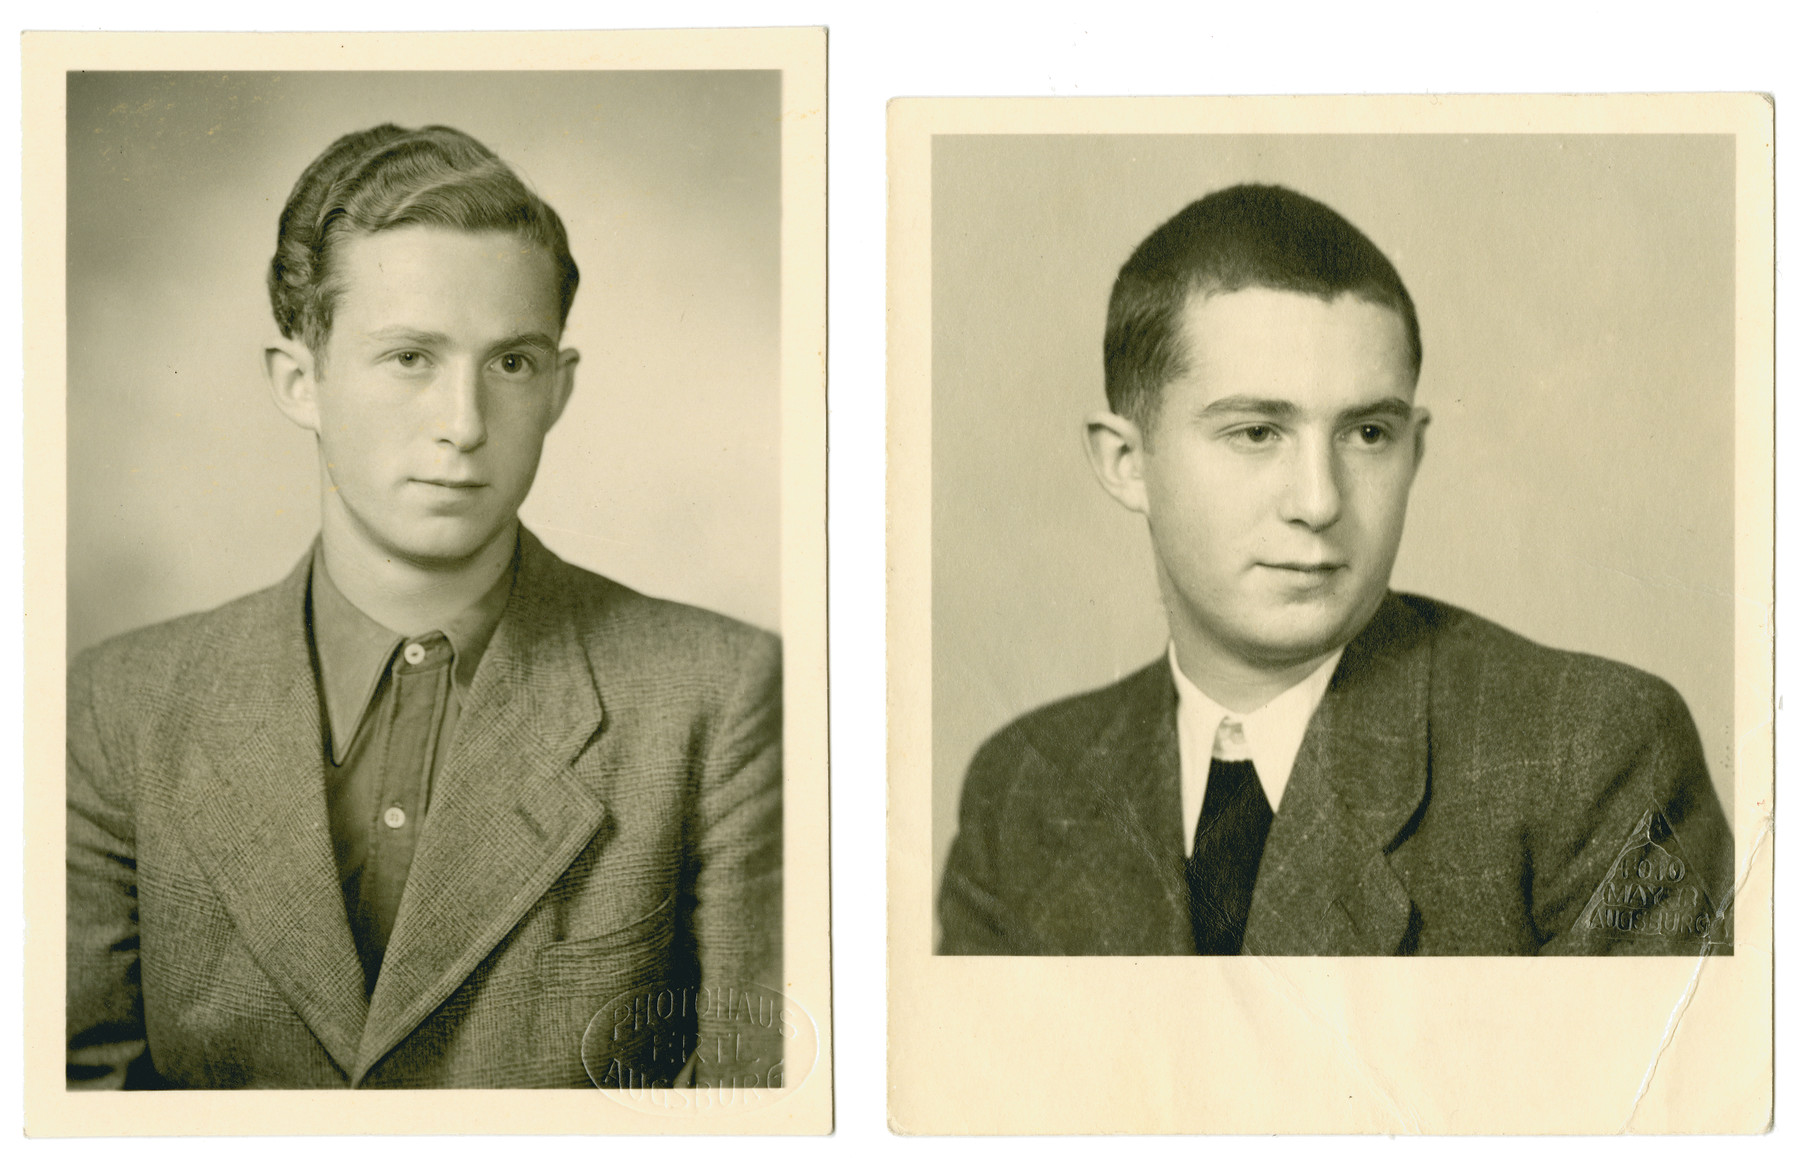 Studio portraits of Heinz Landman taken before and after his incarceration in Dachau on Kristallnacht.